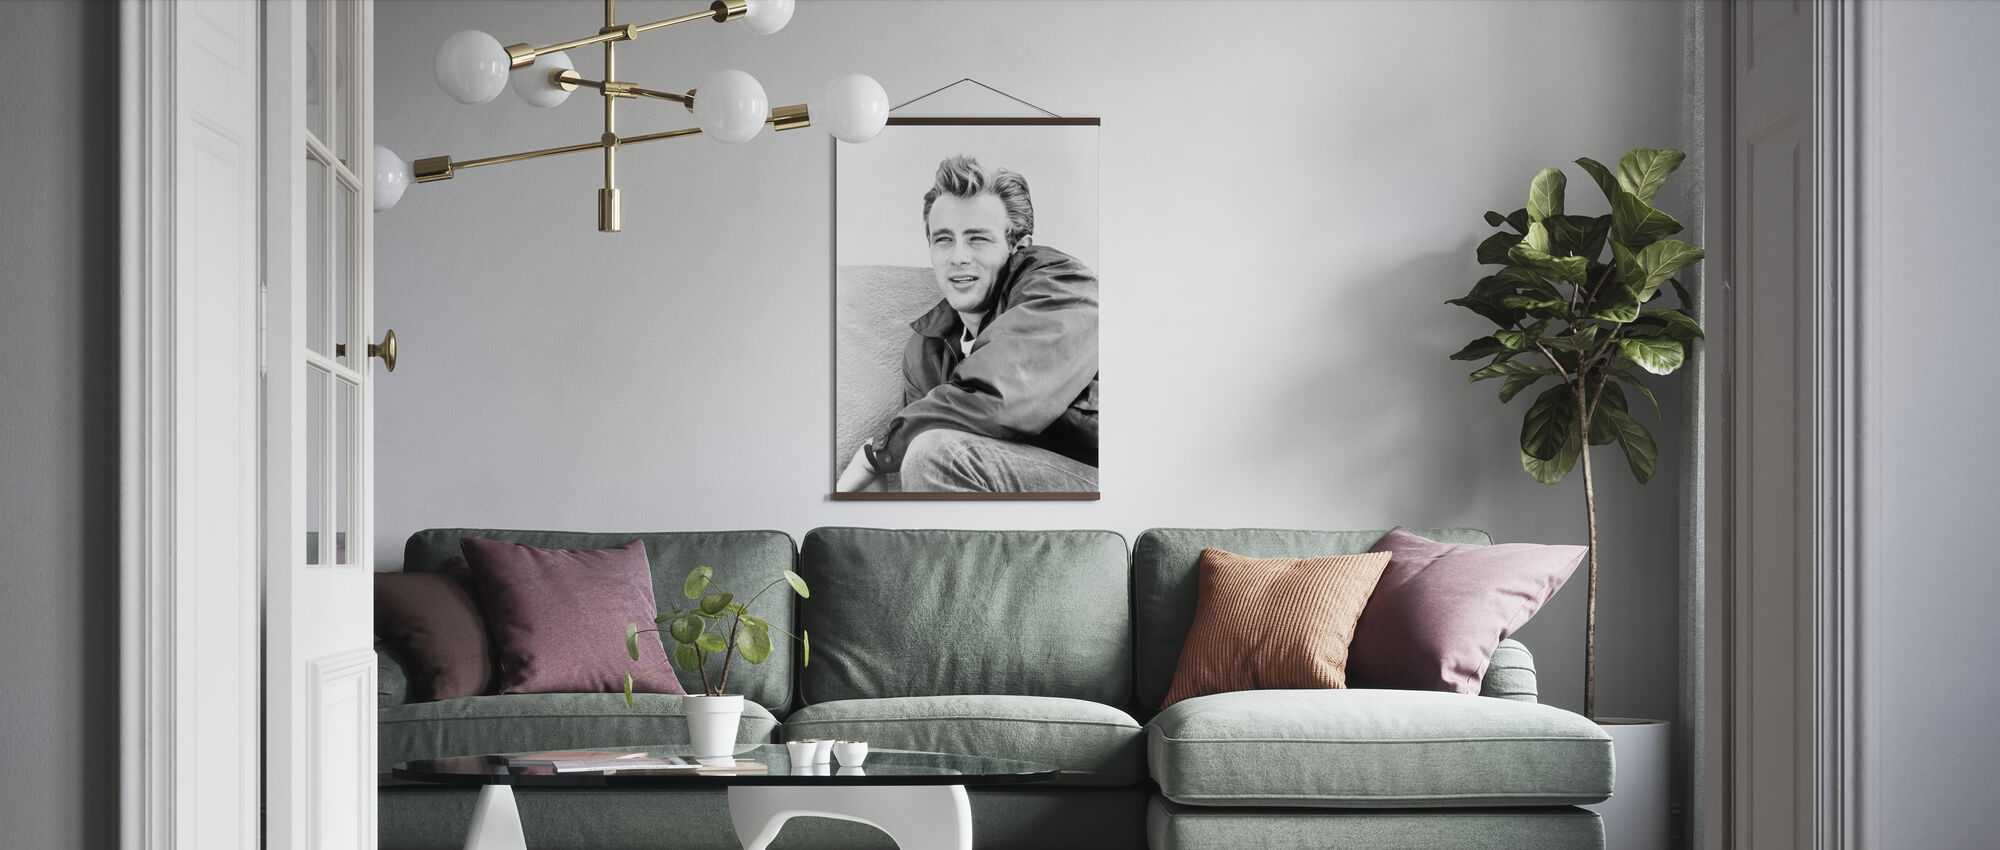 Rebel without a Cause 2 - Poster - Living Room